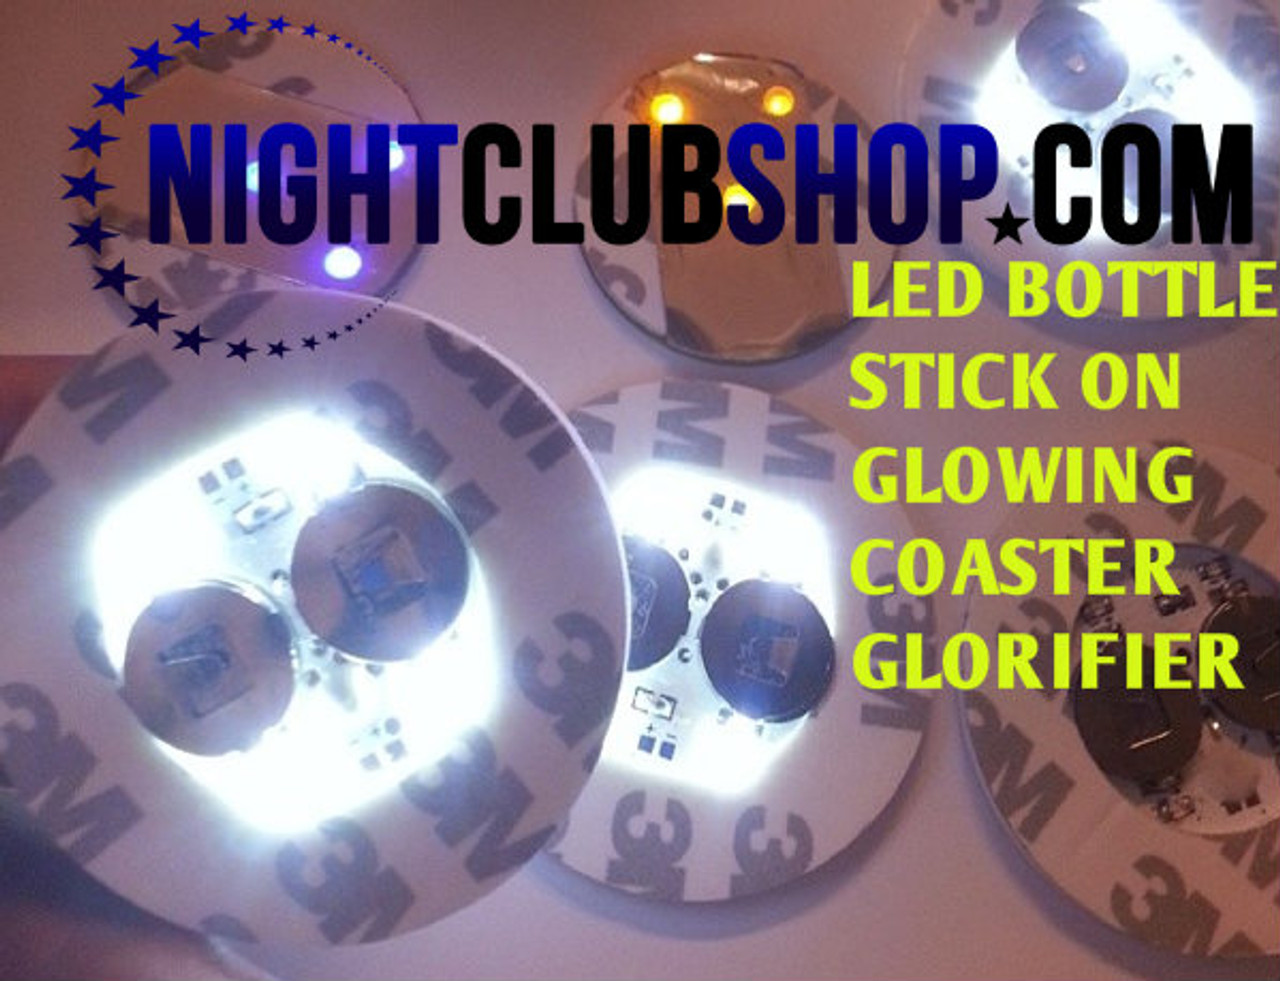 LED, Stick on, waterproof, Coaster, LED COASTER, Bottle Glow, Glorifier,Belvedere, Doit, yourself, make, my own, how do I, Bottle, Glow,